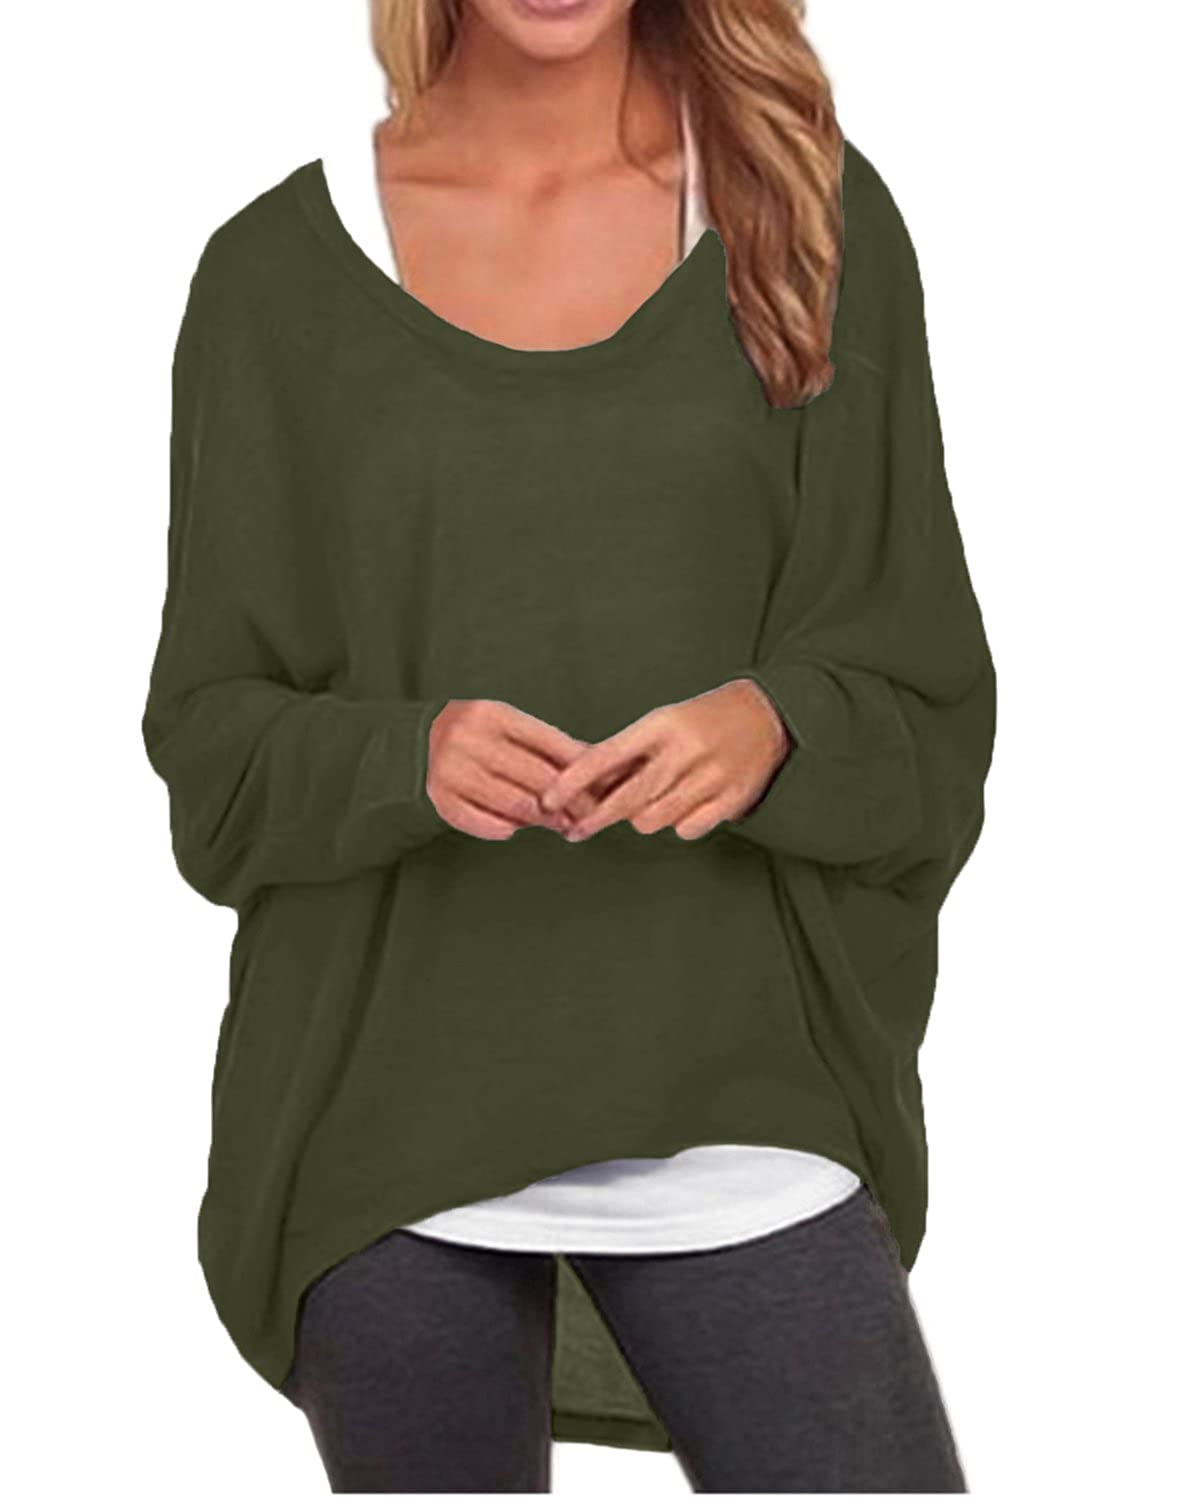 86cfa0dc6f9 ZANZEA Women's Batwing Long Sleeve Off Shoulder Loose Oversized Baggy Tops  Sweater Pullover Casual Blouse T-Shirt at Amazon Women's Clothing store: